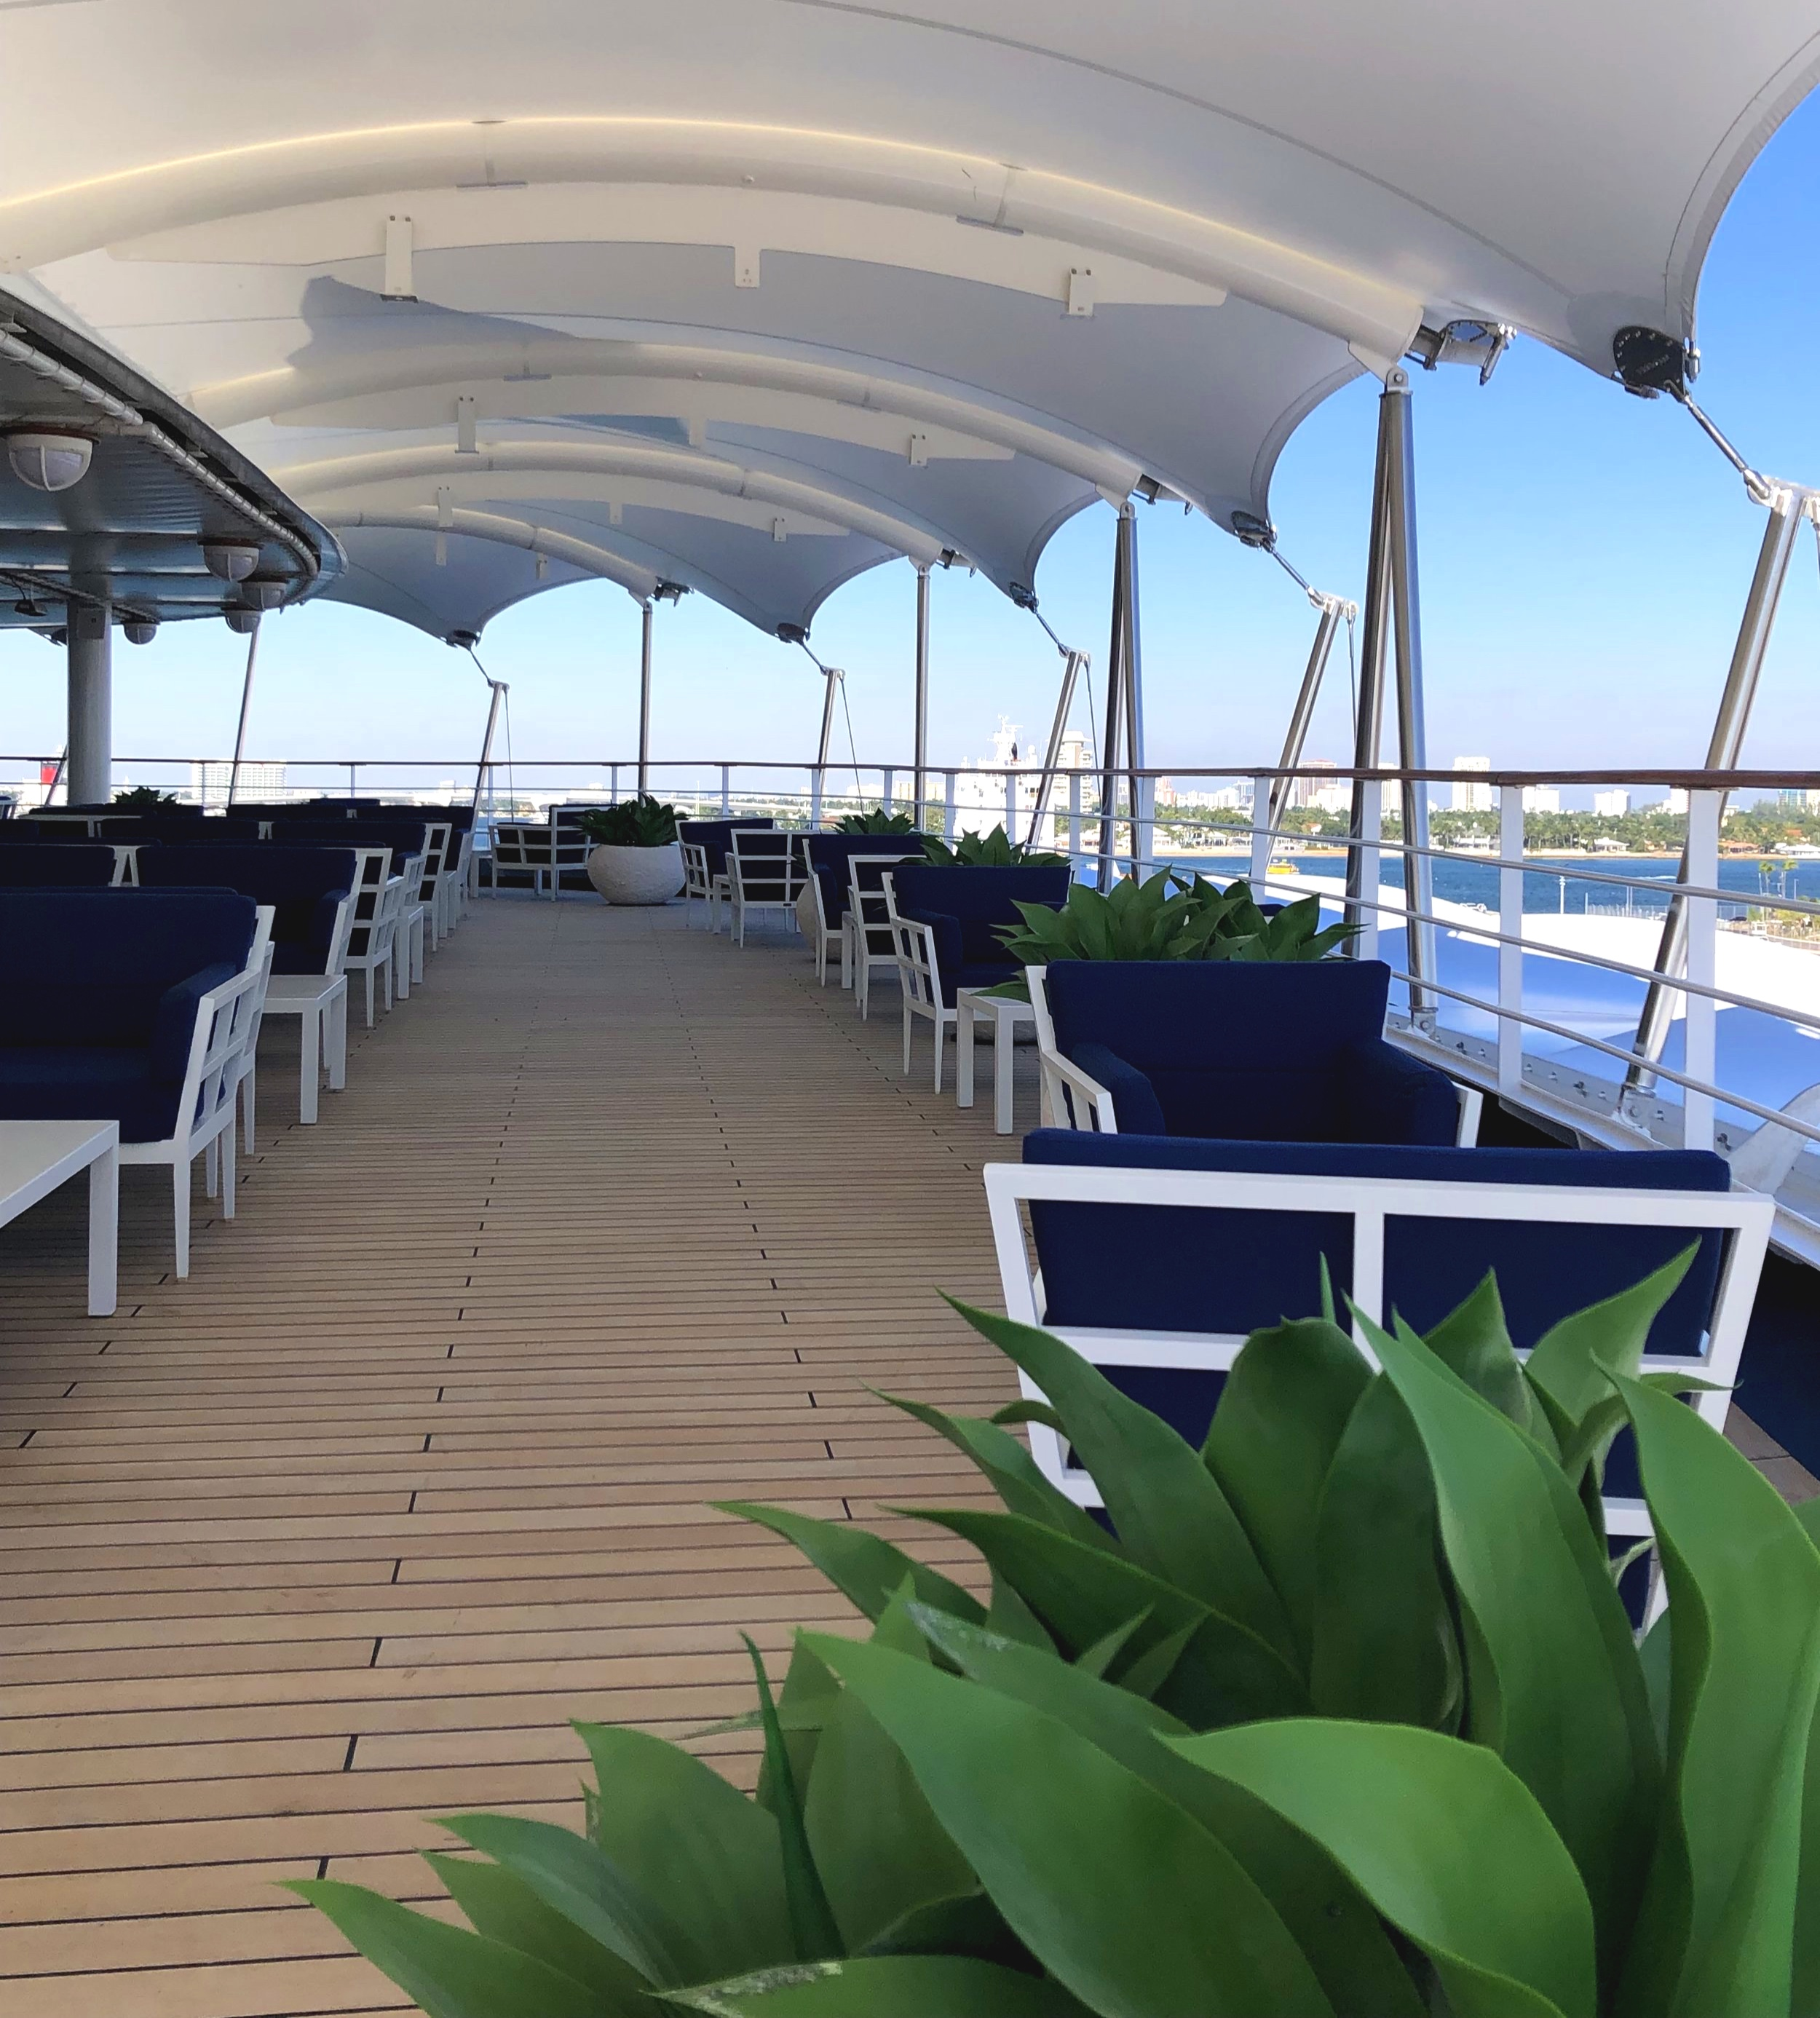 What better place to wait for our suite to be ready than the beautifully serene outside deck of the Panorama lounge?